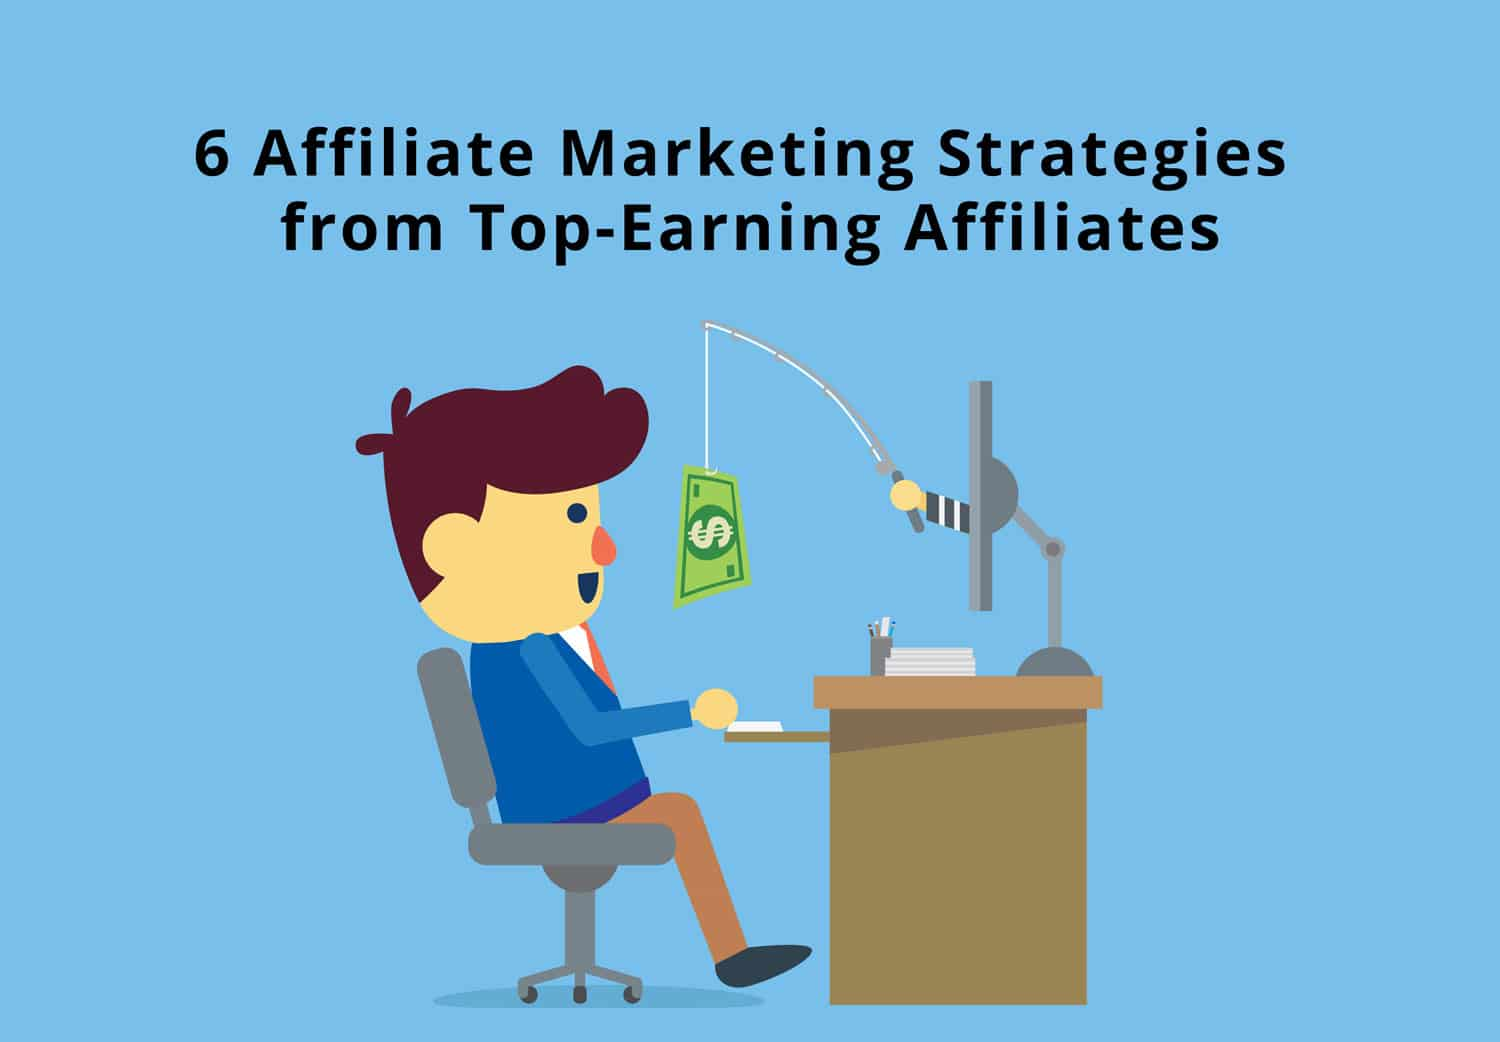 6 Affiliate Marketing Strategies from Top-Earning Affiliates